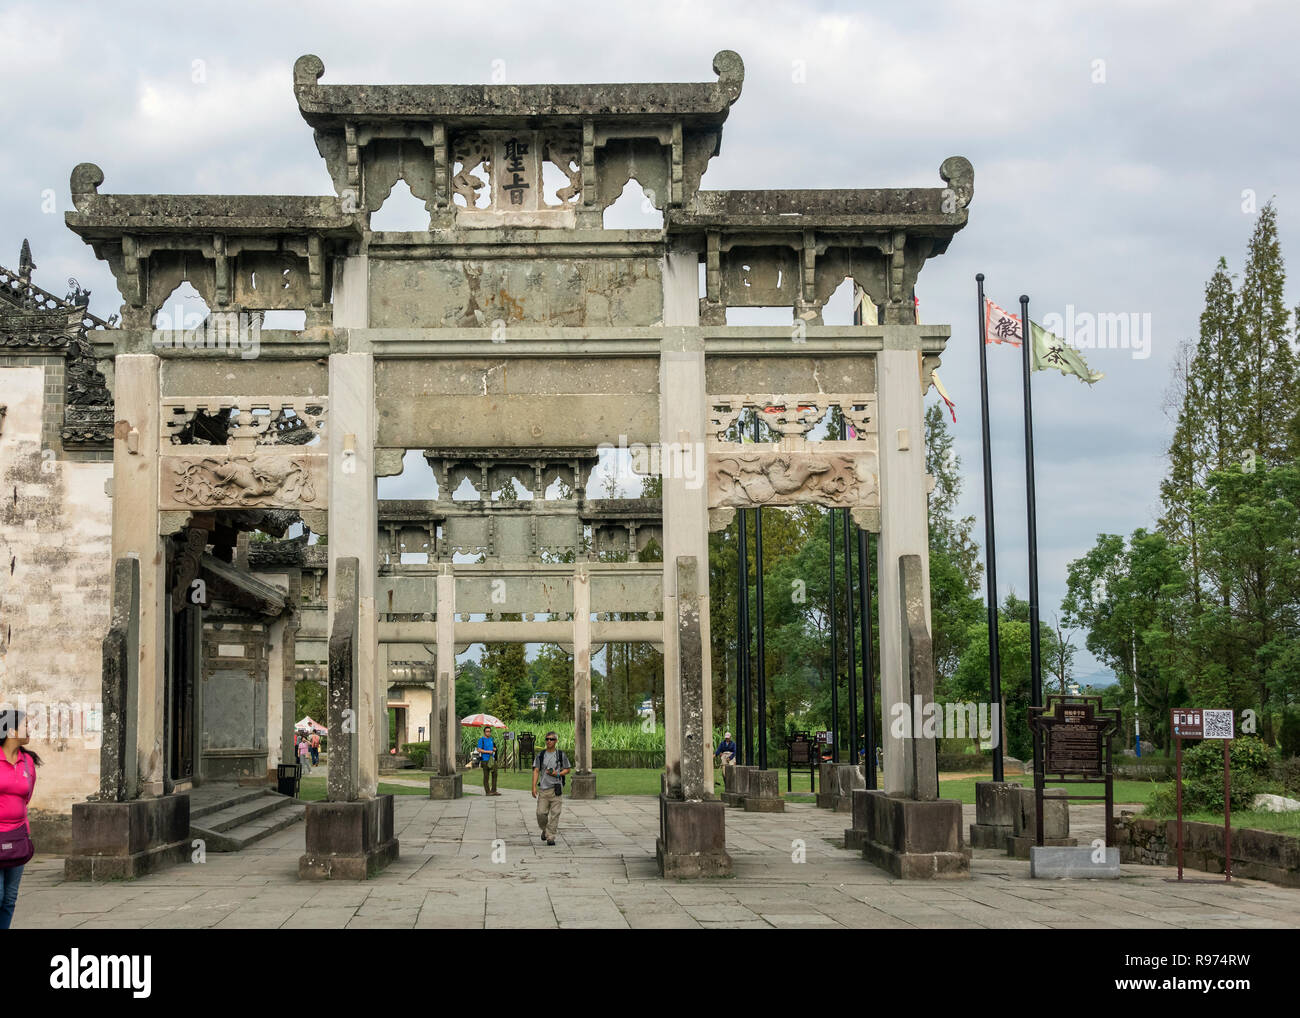 Bao CanXiao Archway for Filial Piety (front) Archway for Father's Love and Son's Filial Piety, Tangyue, China - Stock Image